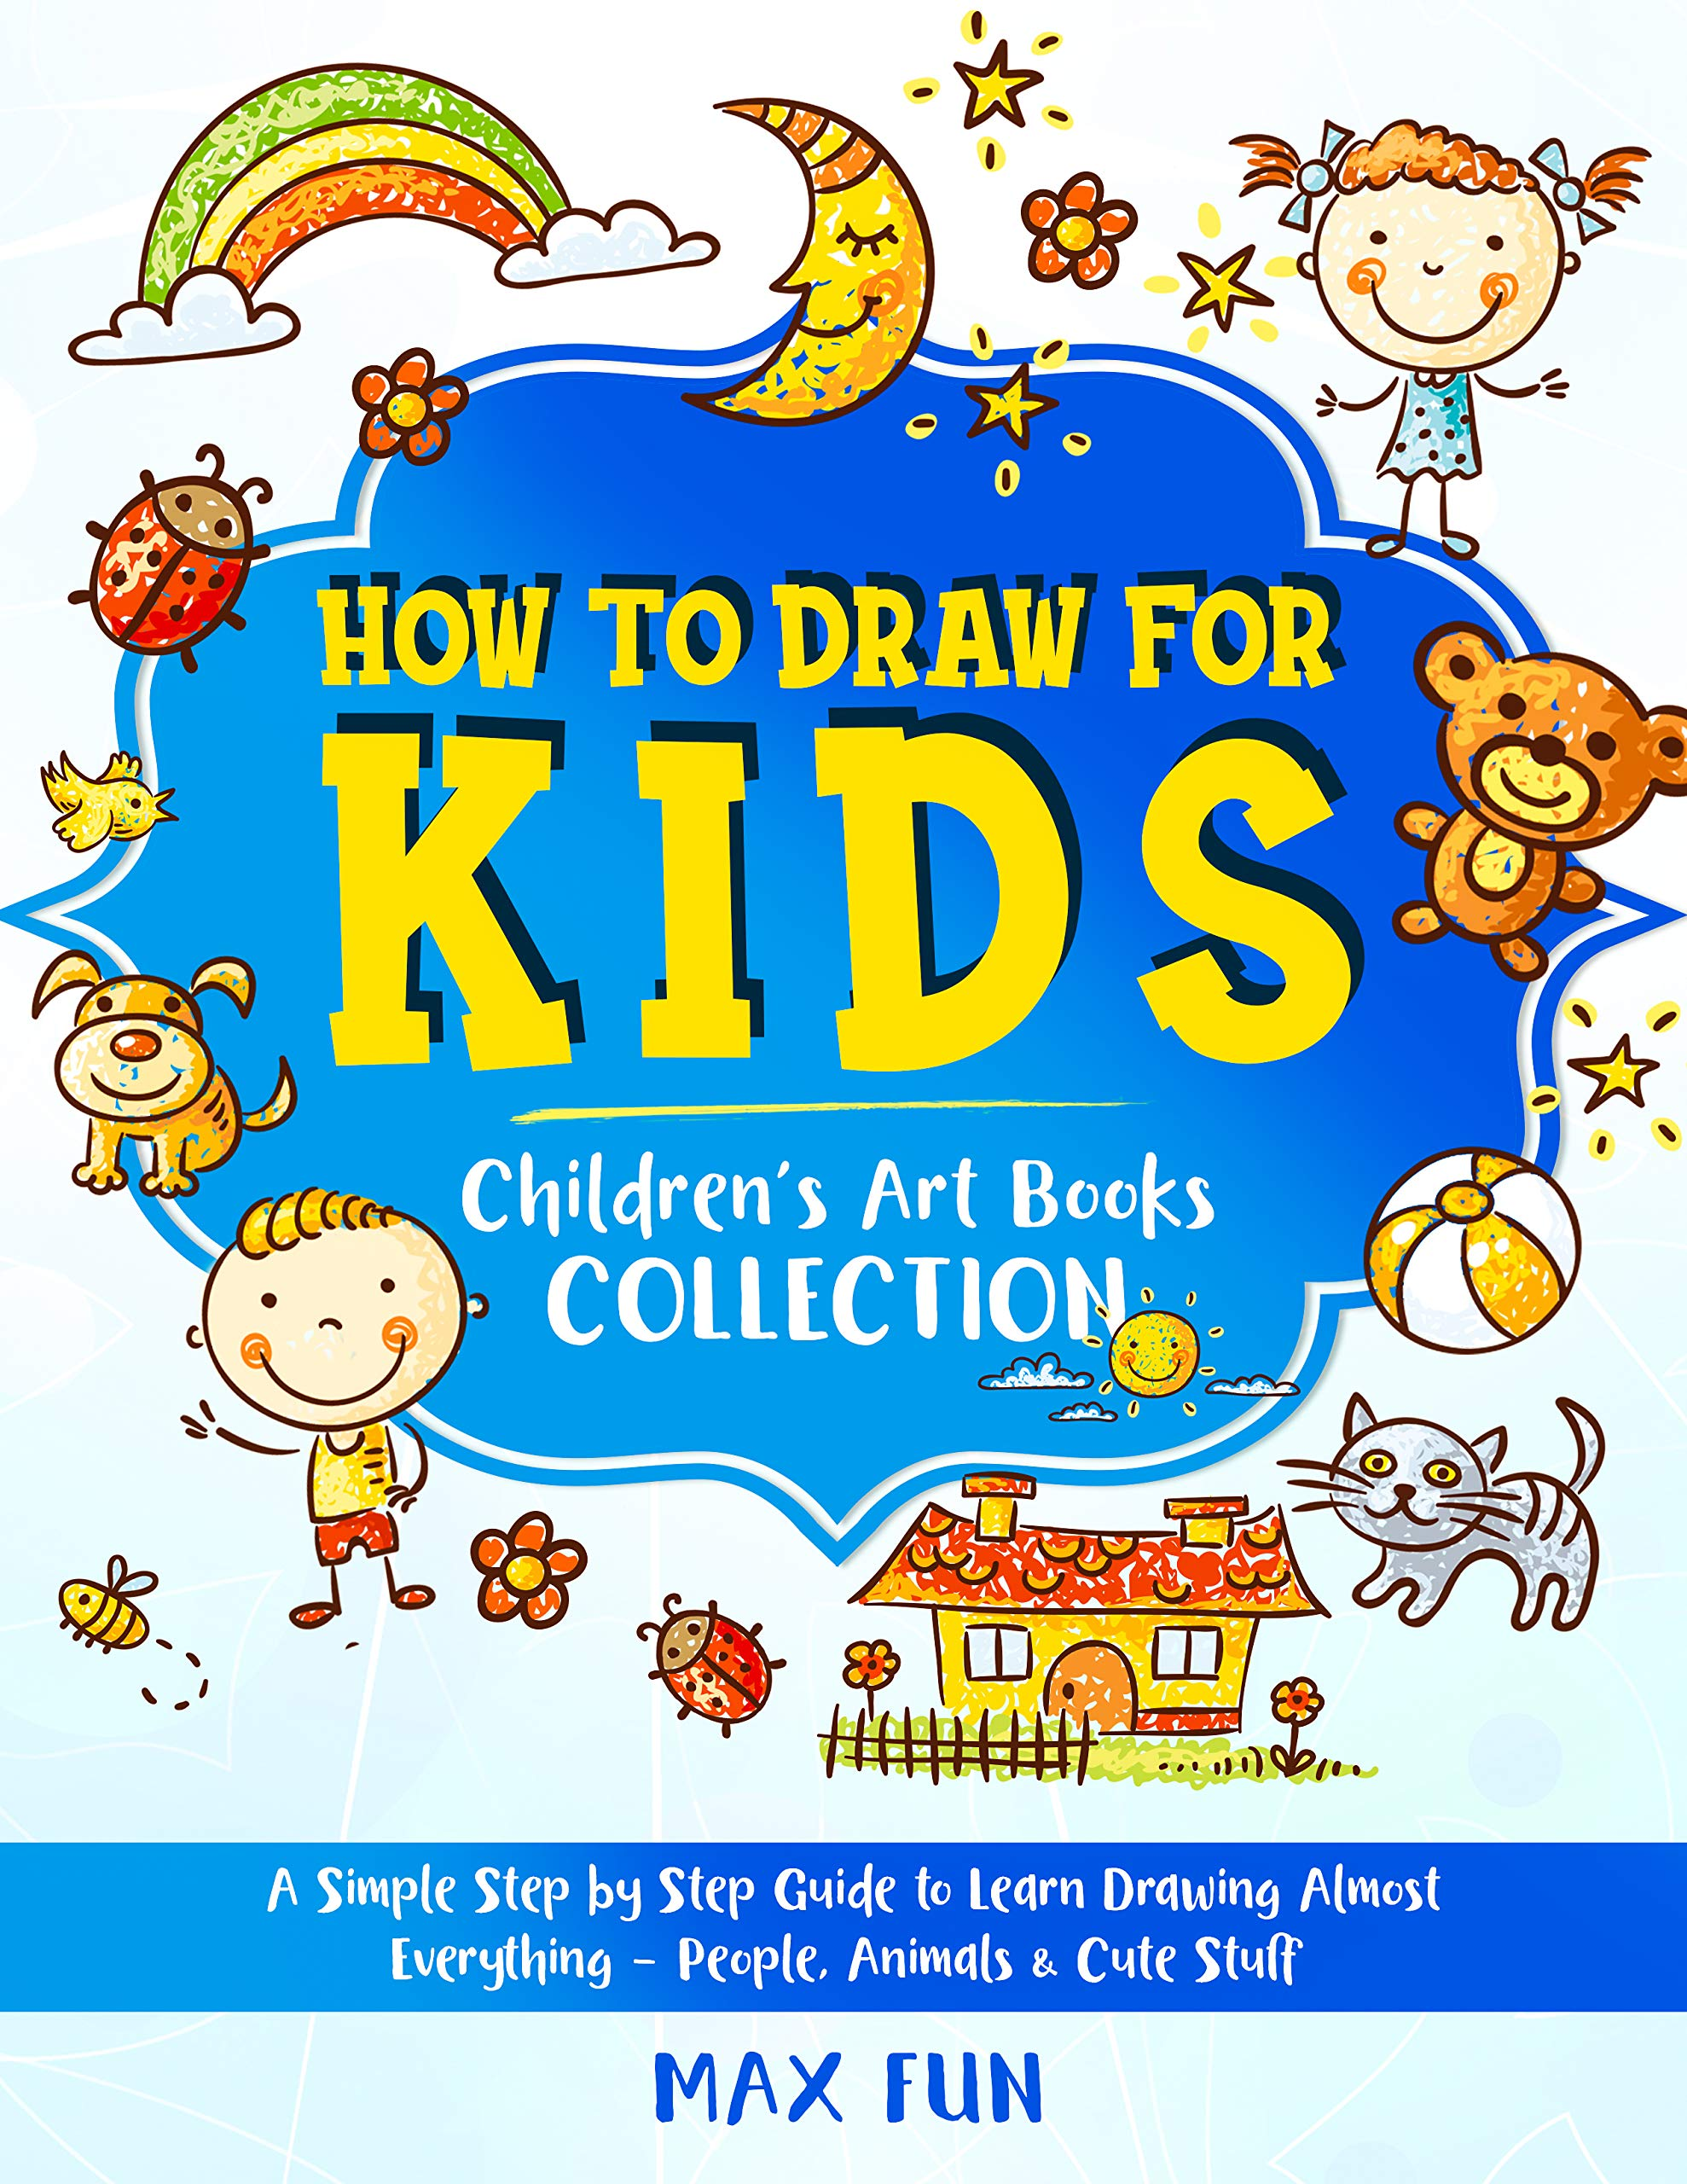 How to Draw for Kids: A Simple Step by Step Guide to Learn Drawing Almost Everything – People, Animals & Cute Stuff (Children's Art Book COLLECTION) (Children's Drawing Books 4)